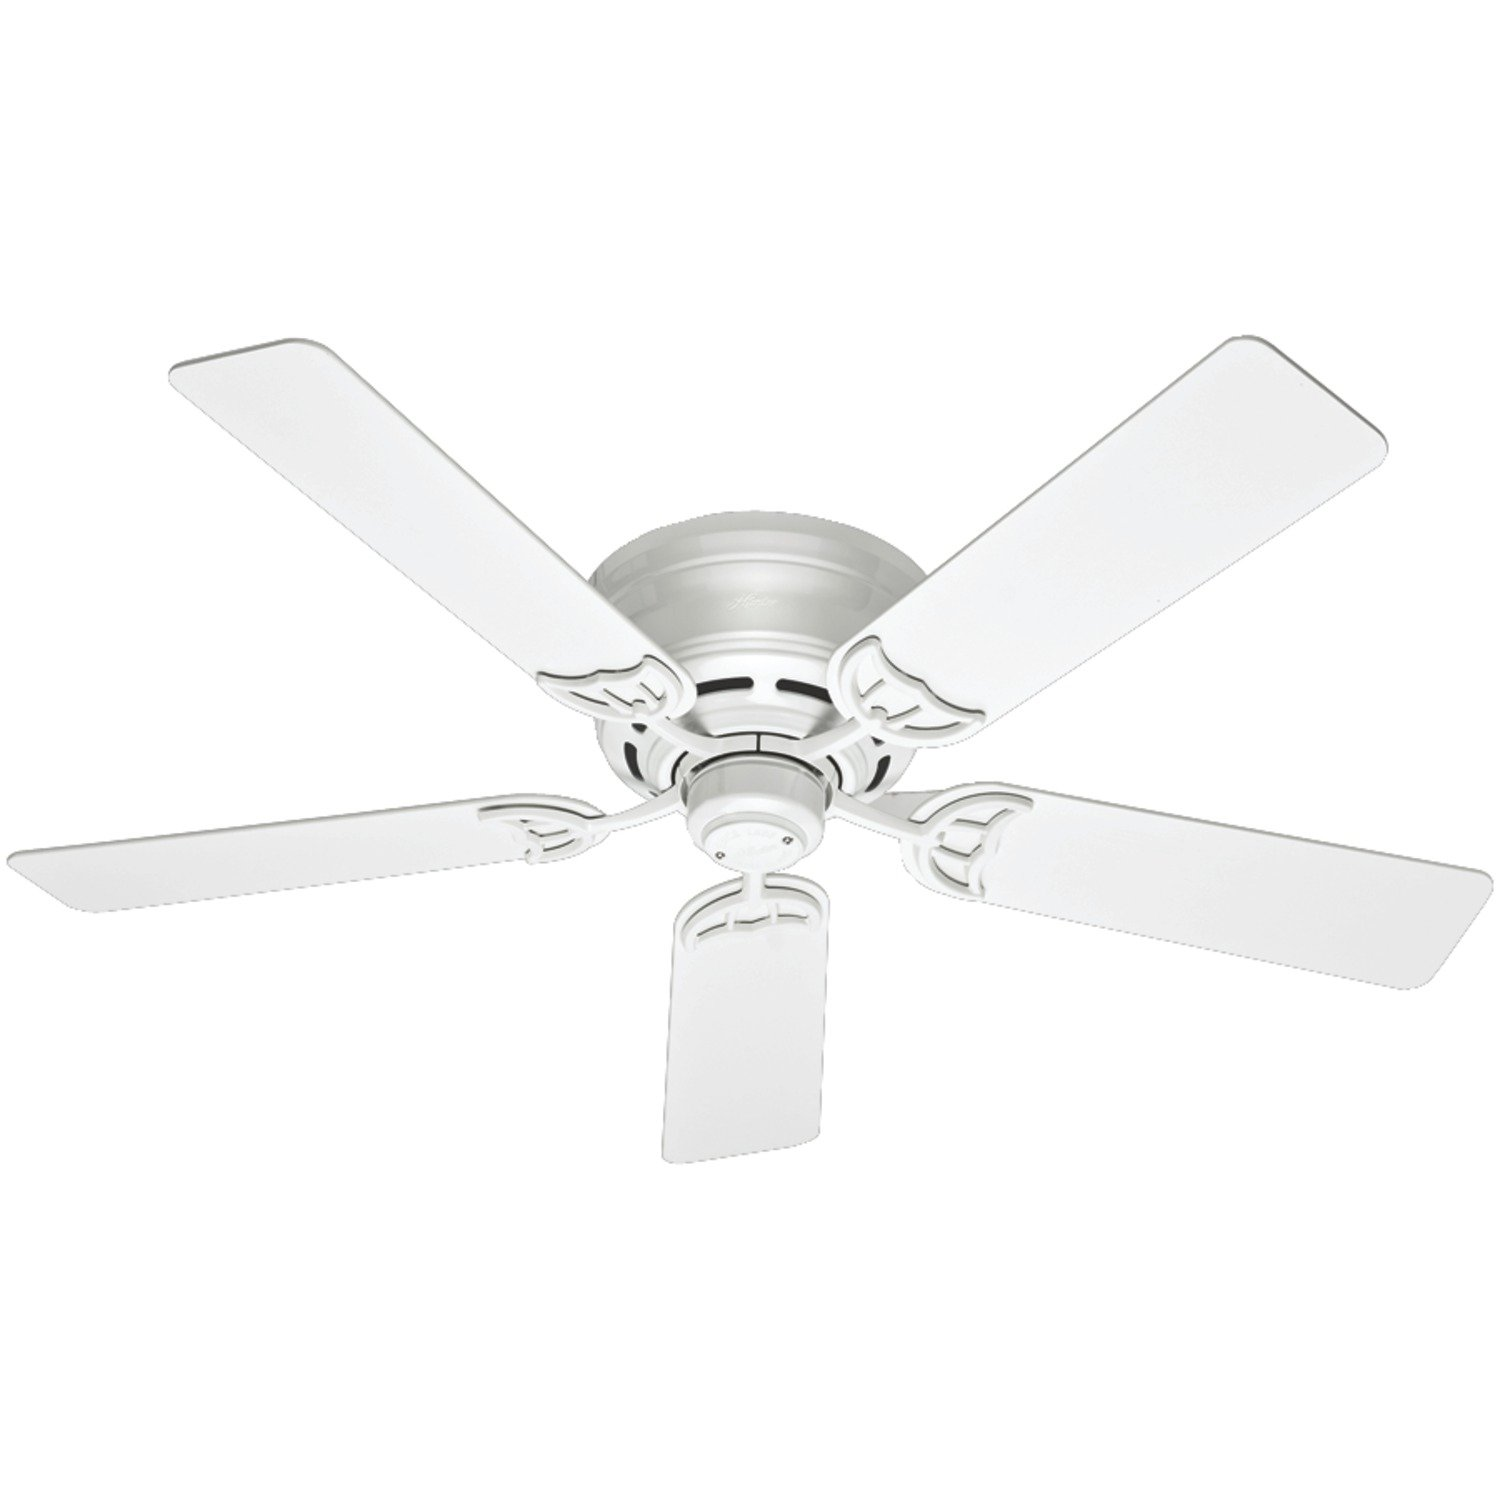 Hunter 53069 Low Profile III 52-Inch Ceiling Fan with Five White Blades, White